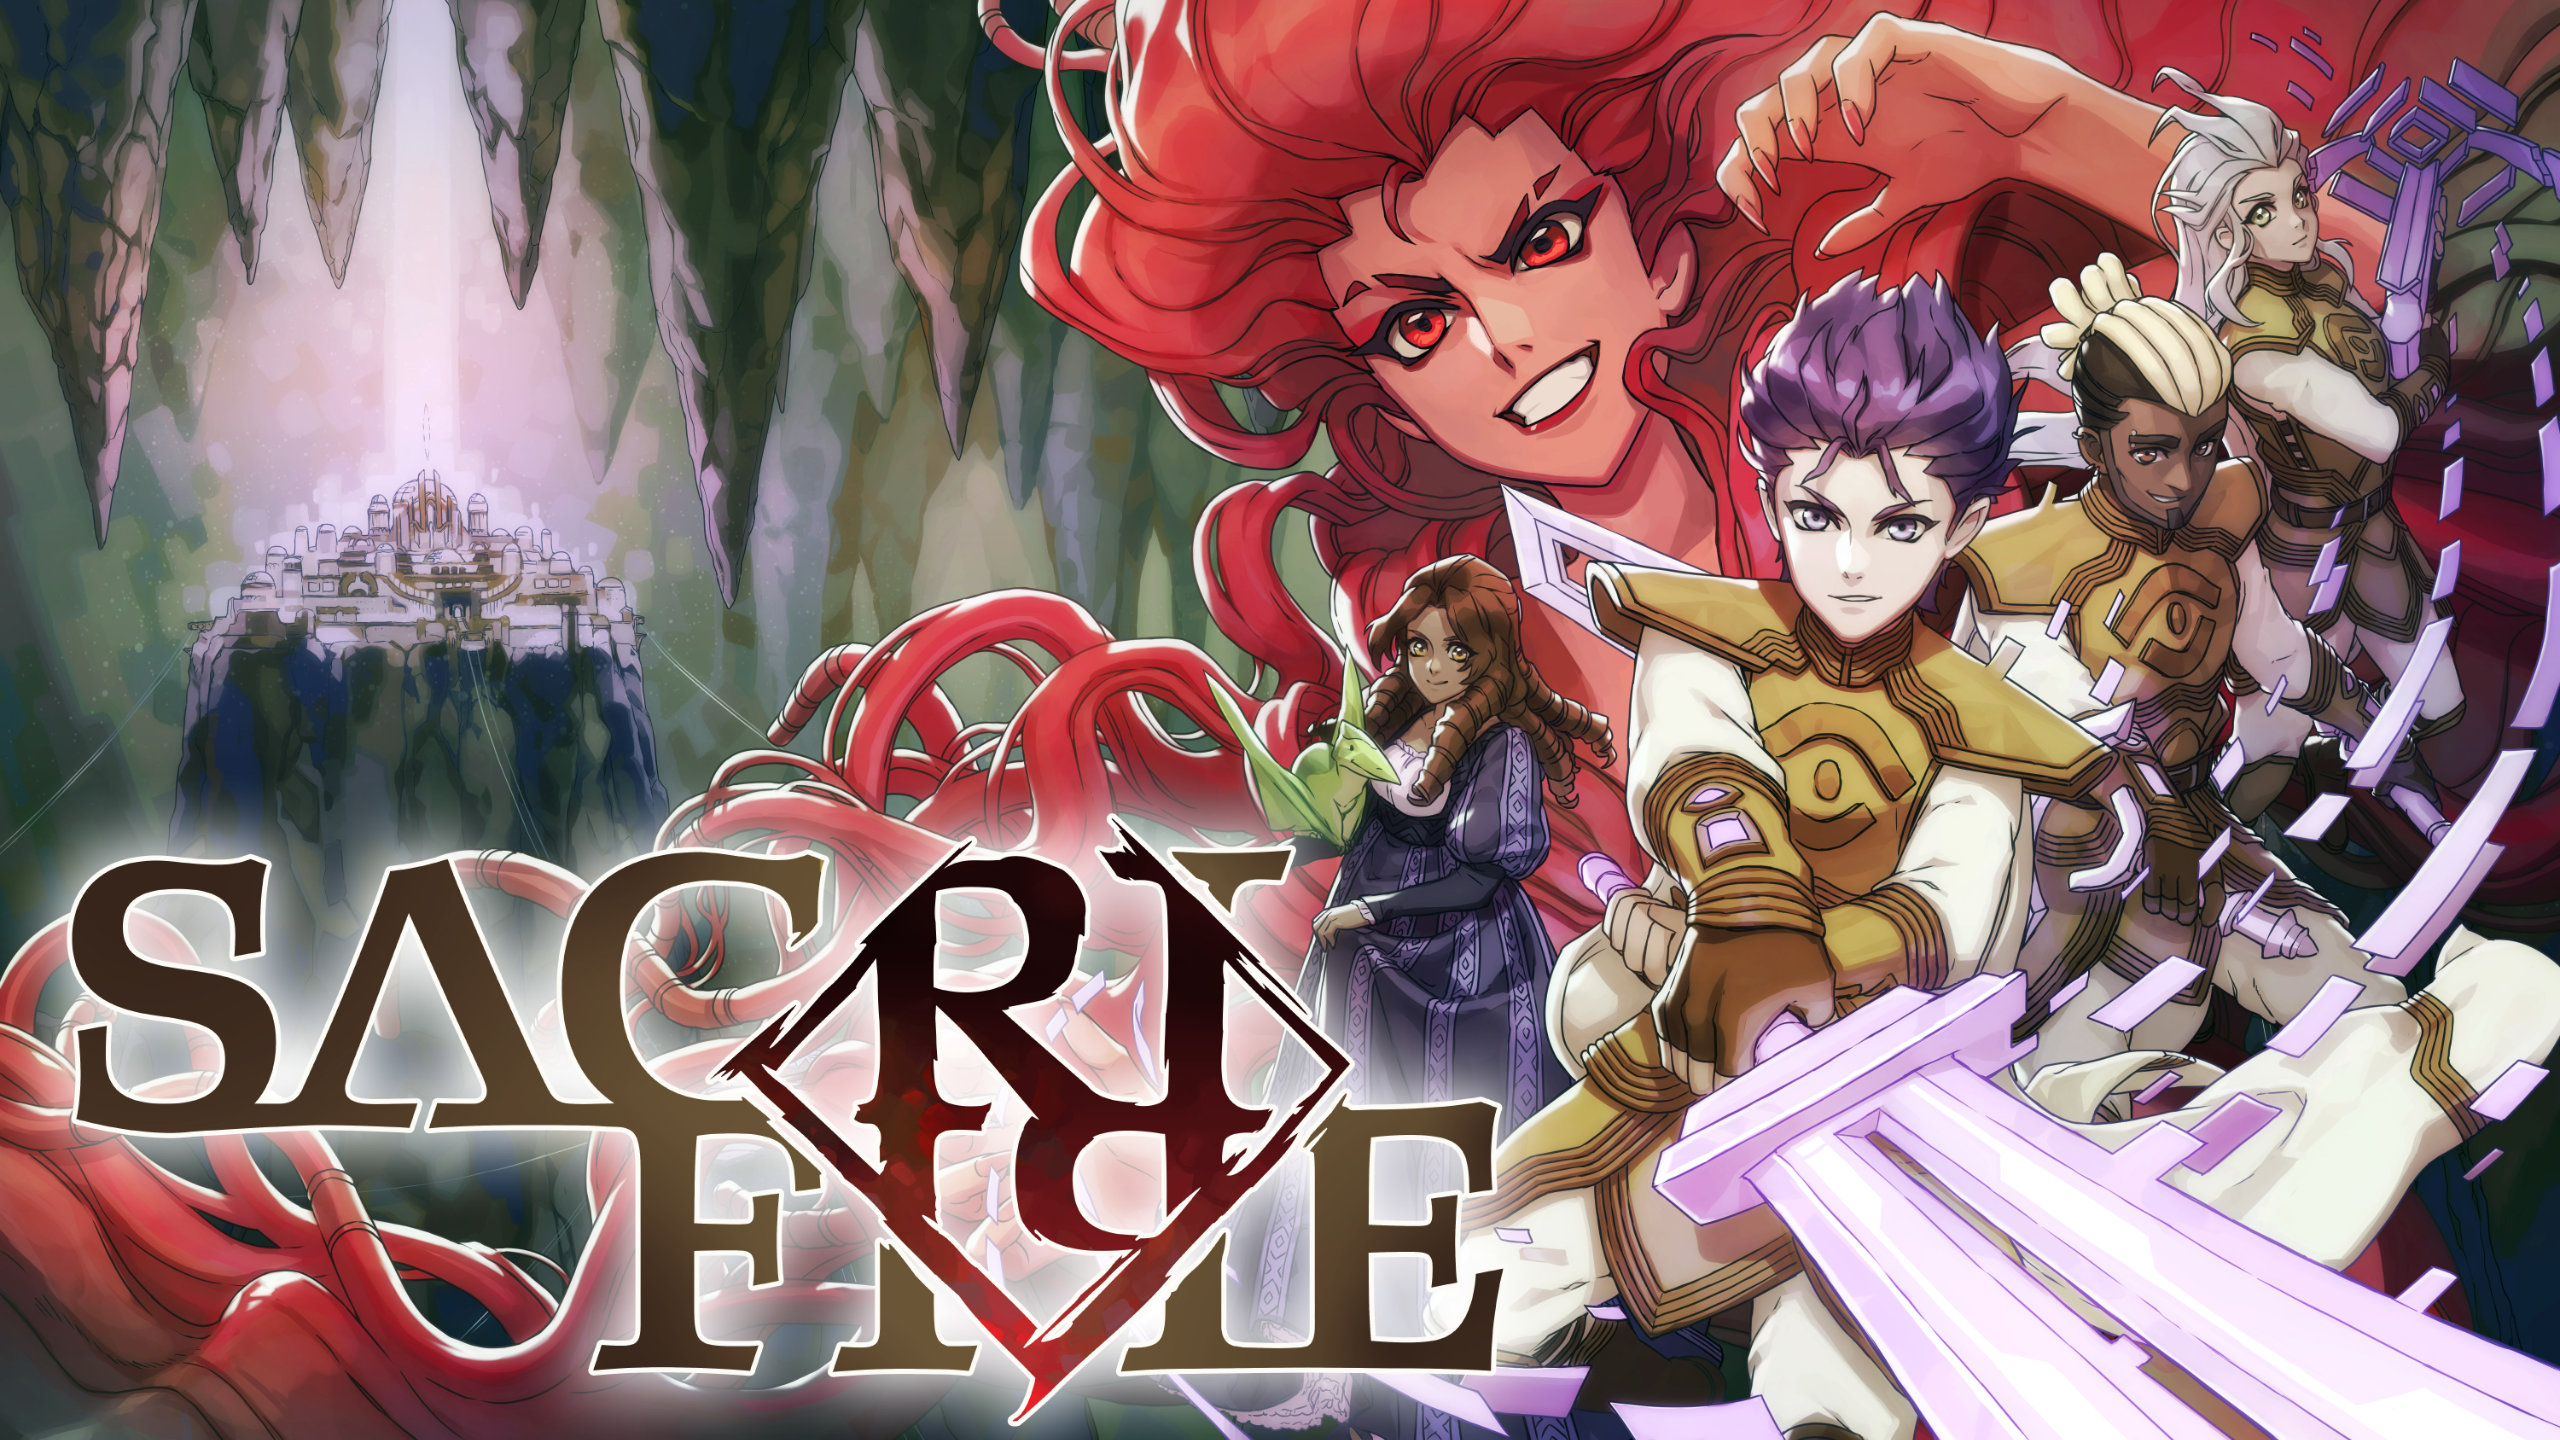 SacriFire Artwork of a diverse cast of characters including a boy with a glowing purple sword and a girl with a pet baby pterodactyl.